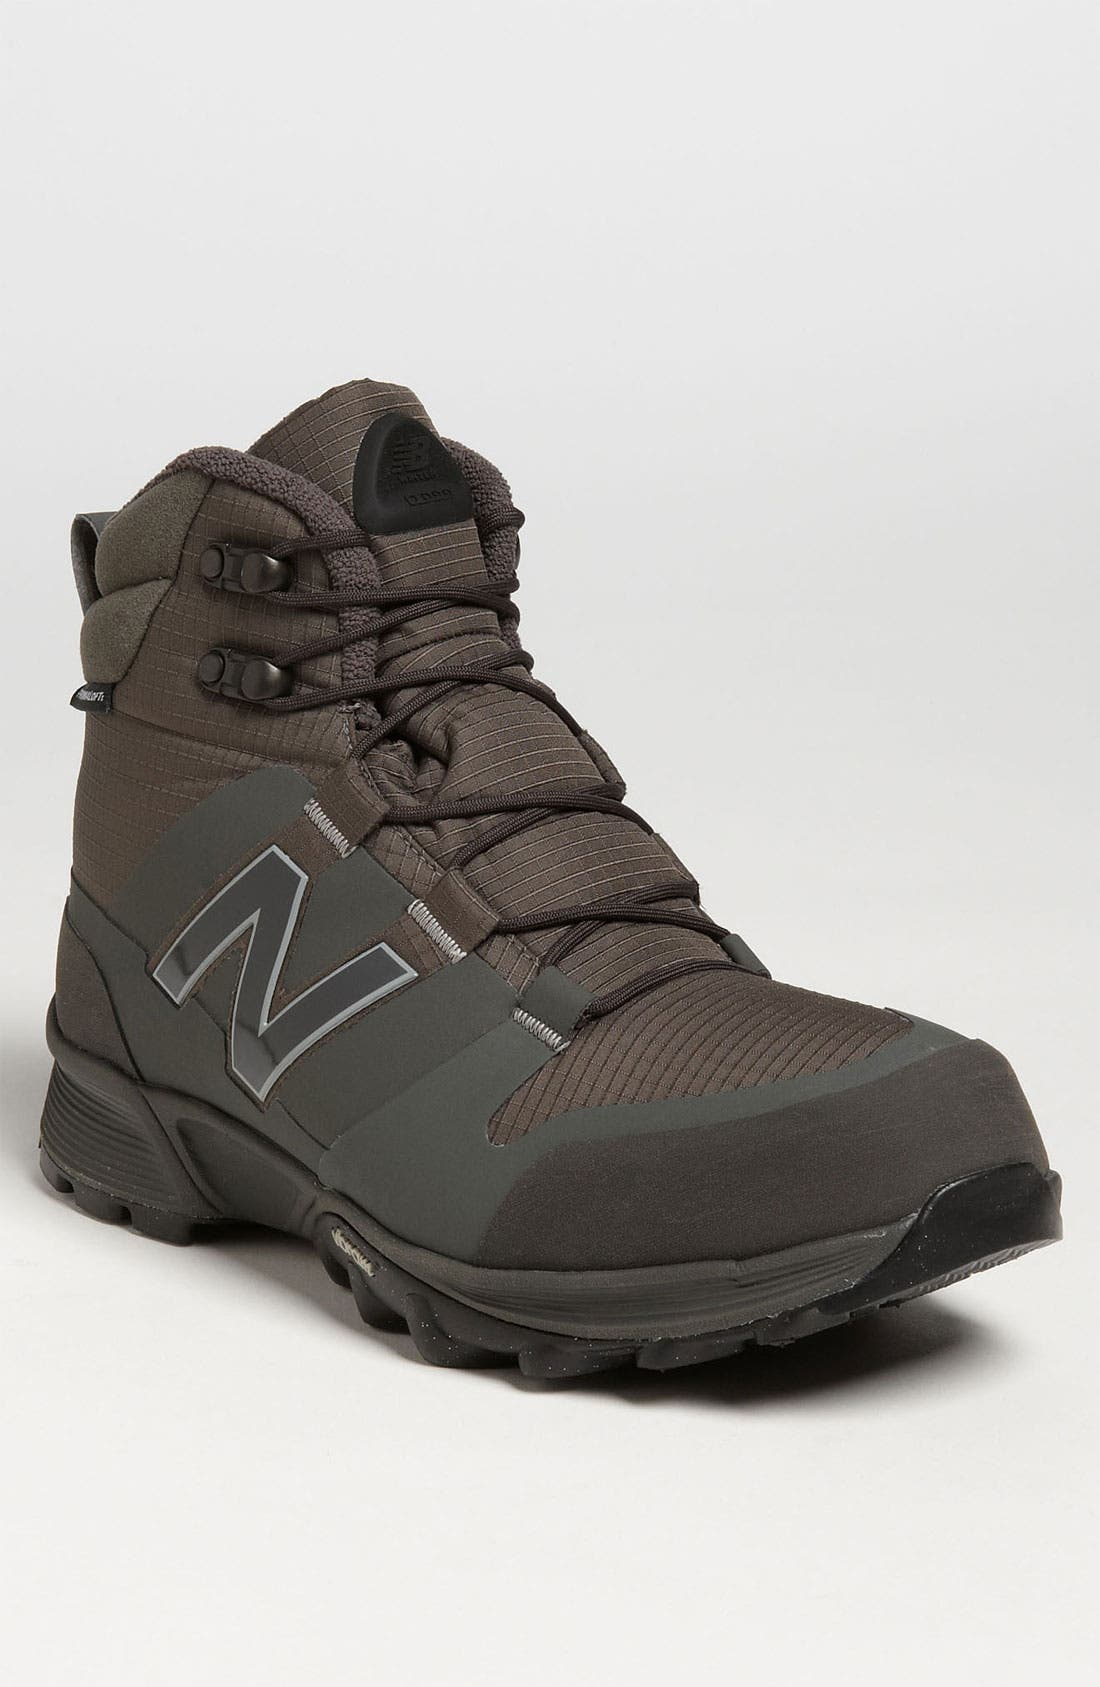 Alternate Image 1 Selected - New Balance '1099' Hiking Boot (Men) (Online Only)